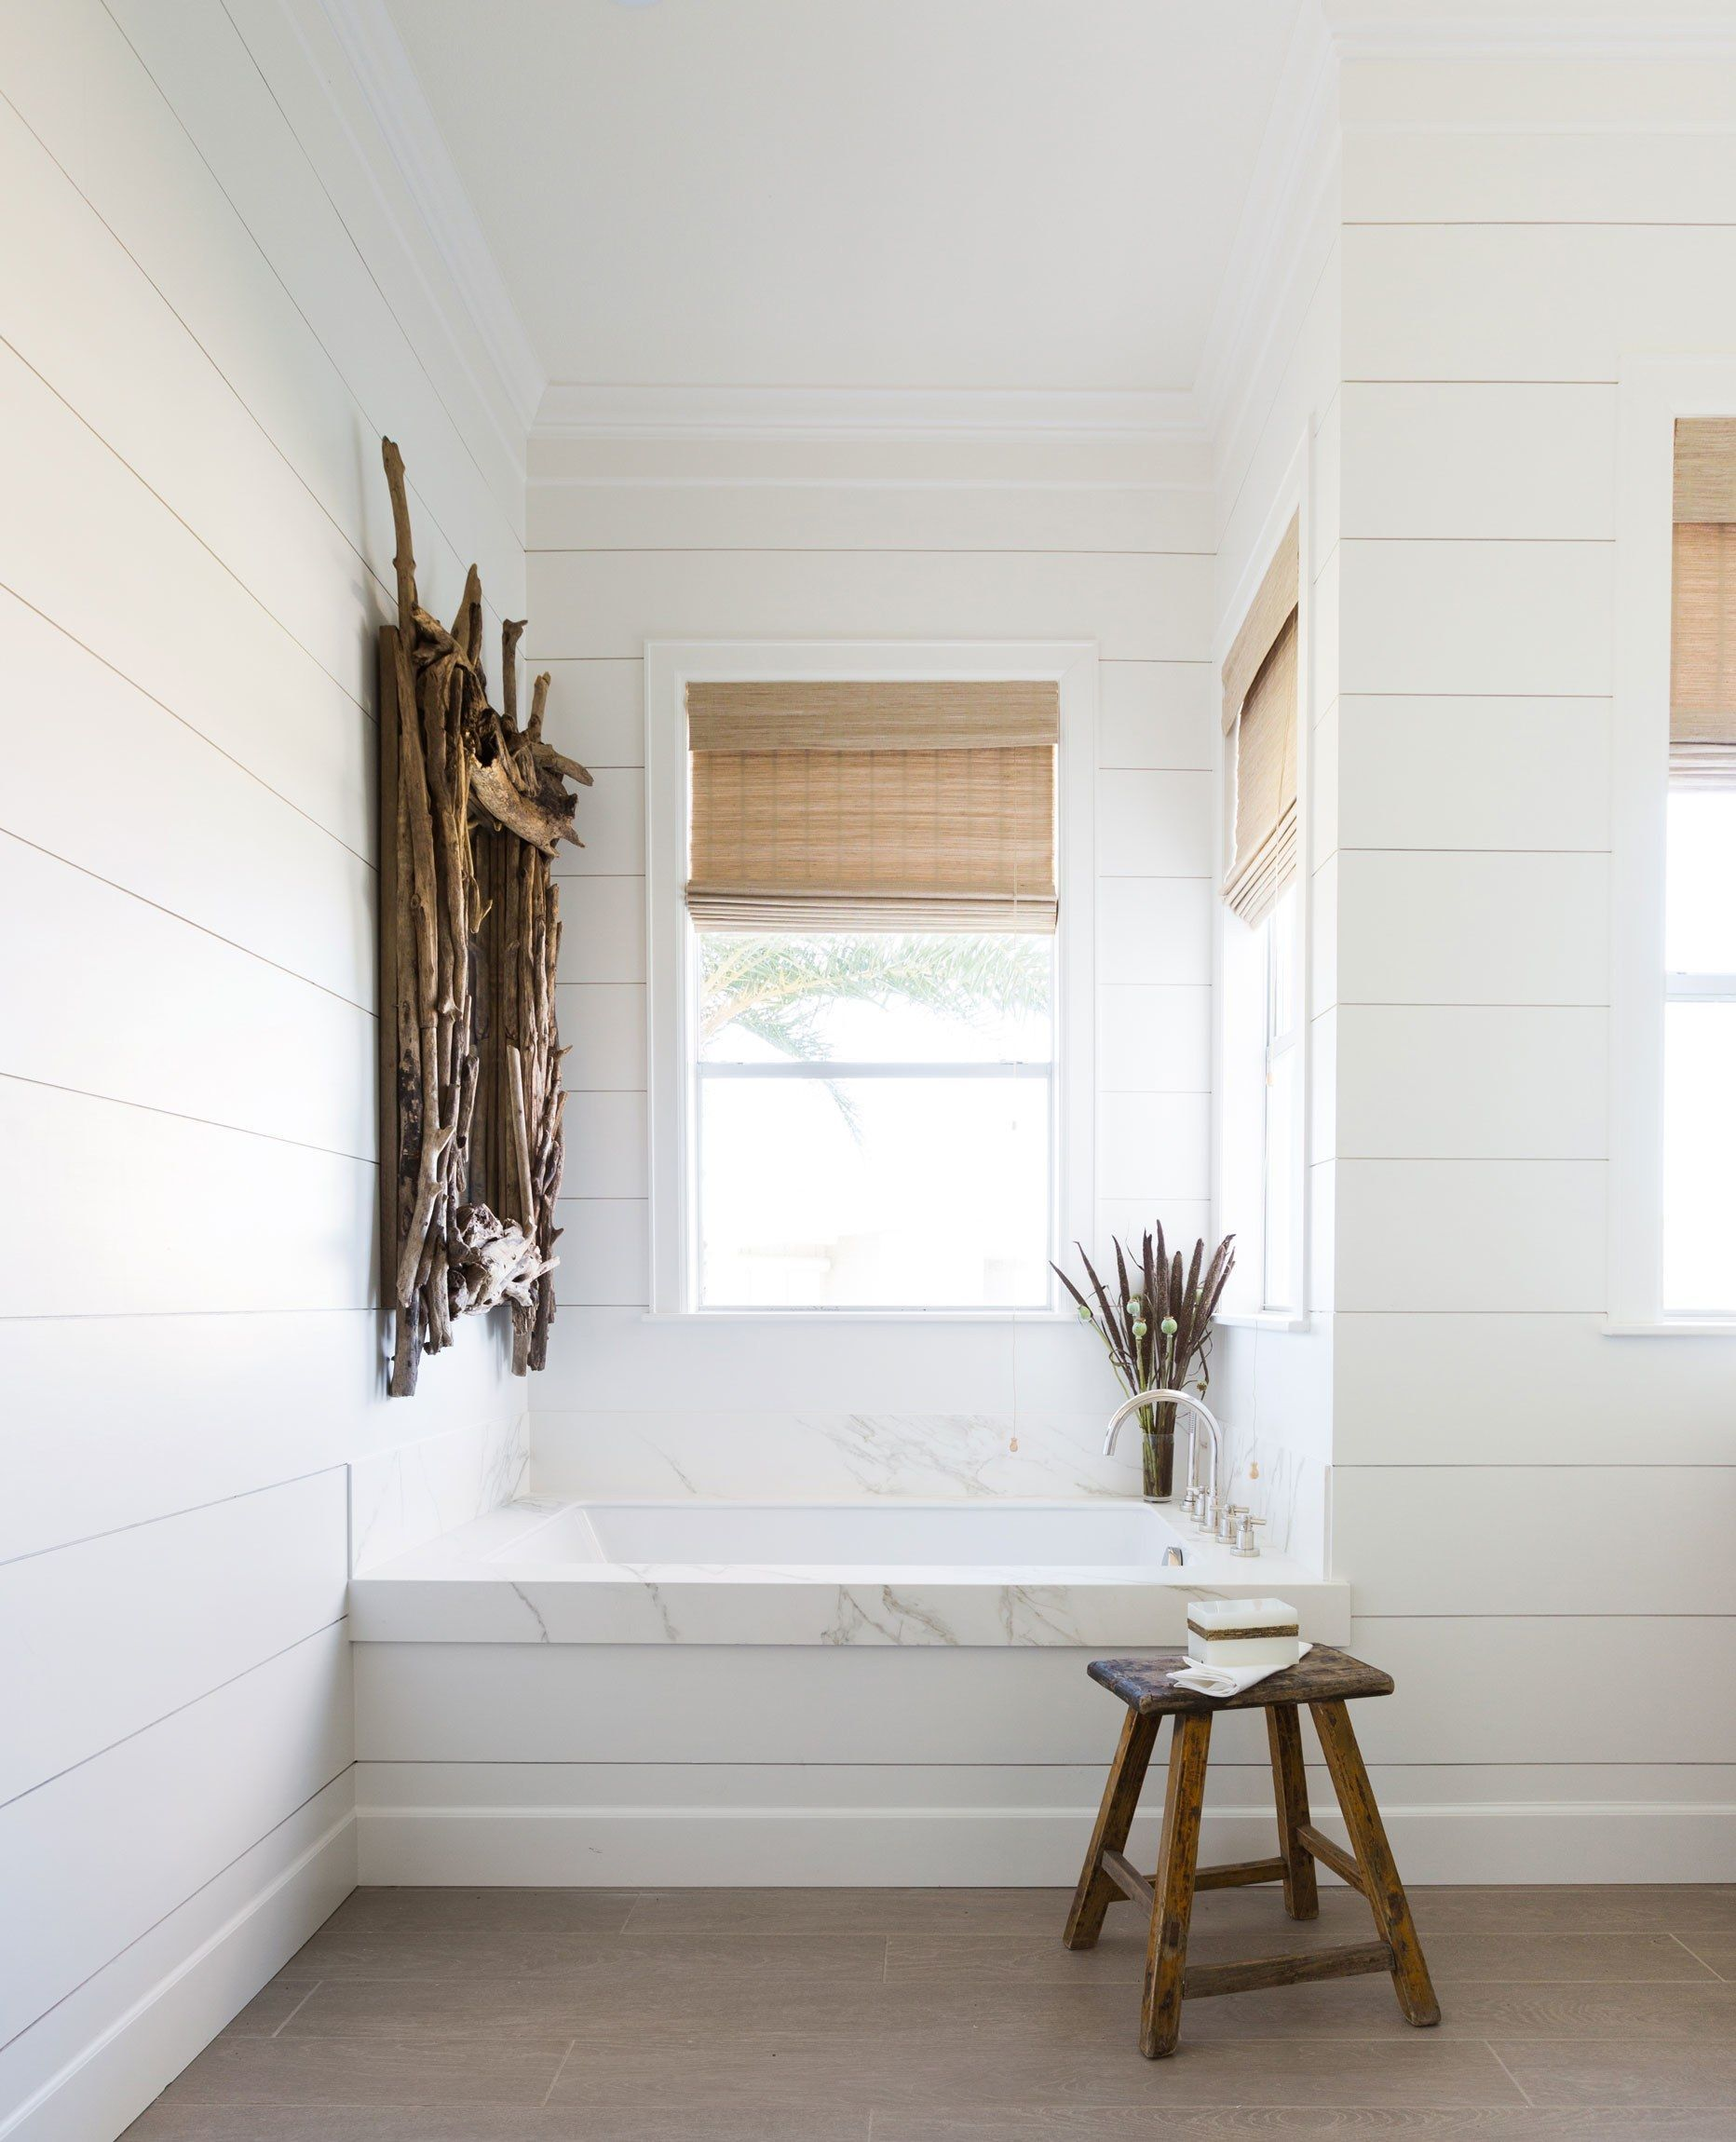 This bathroom has a relaxing and stylish feel with the combination ...